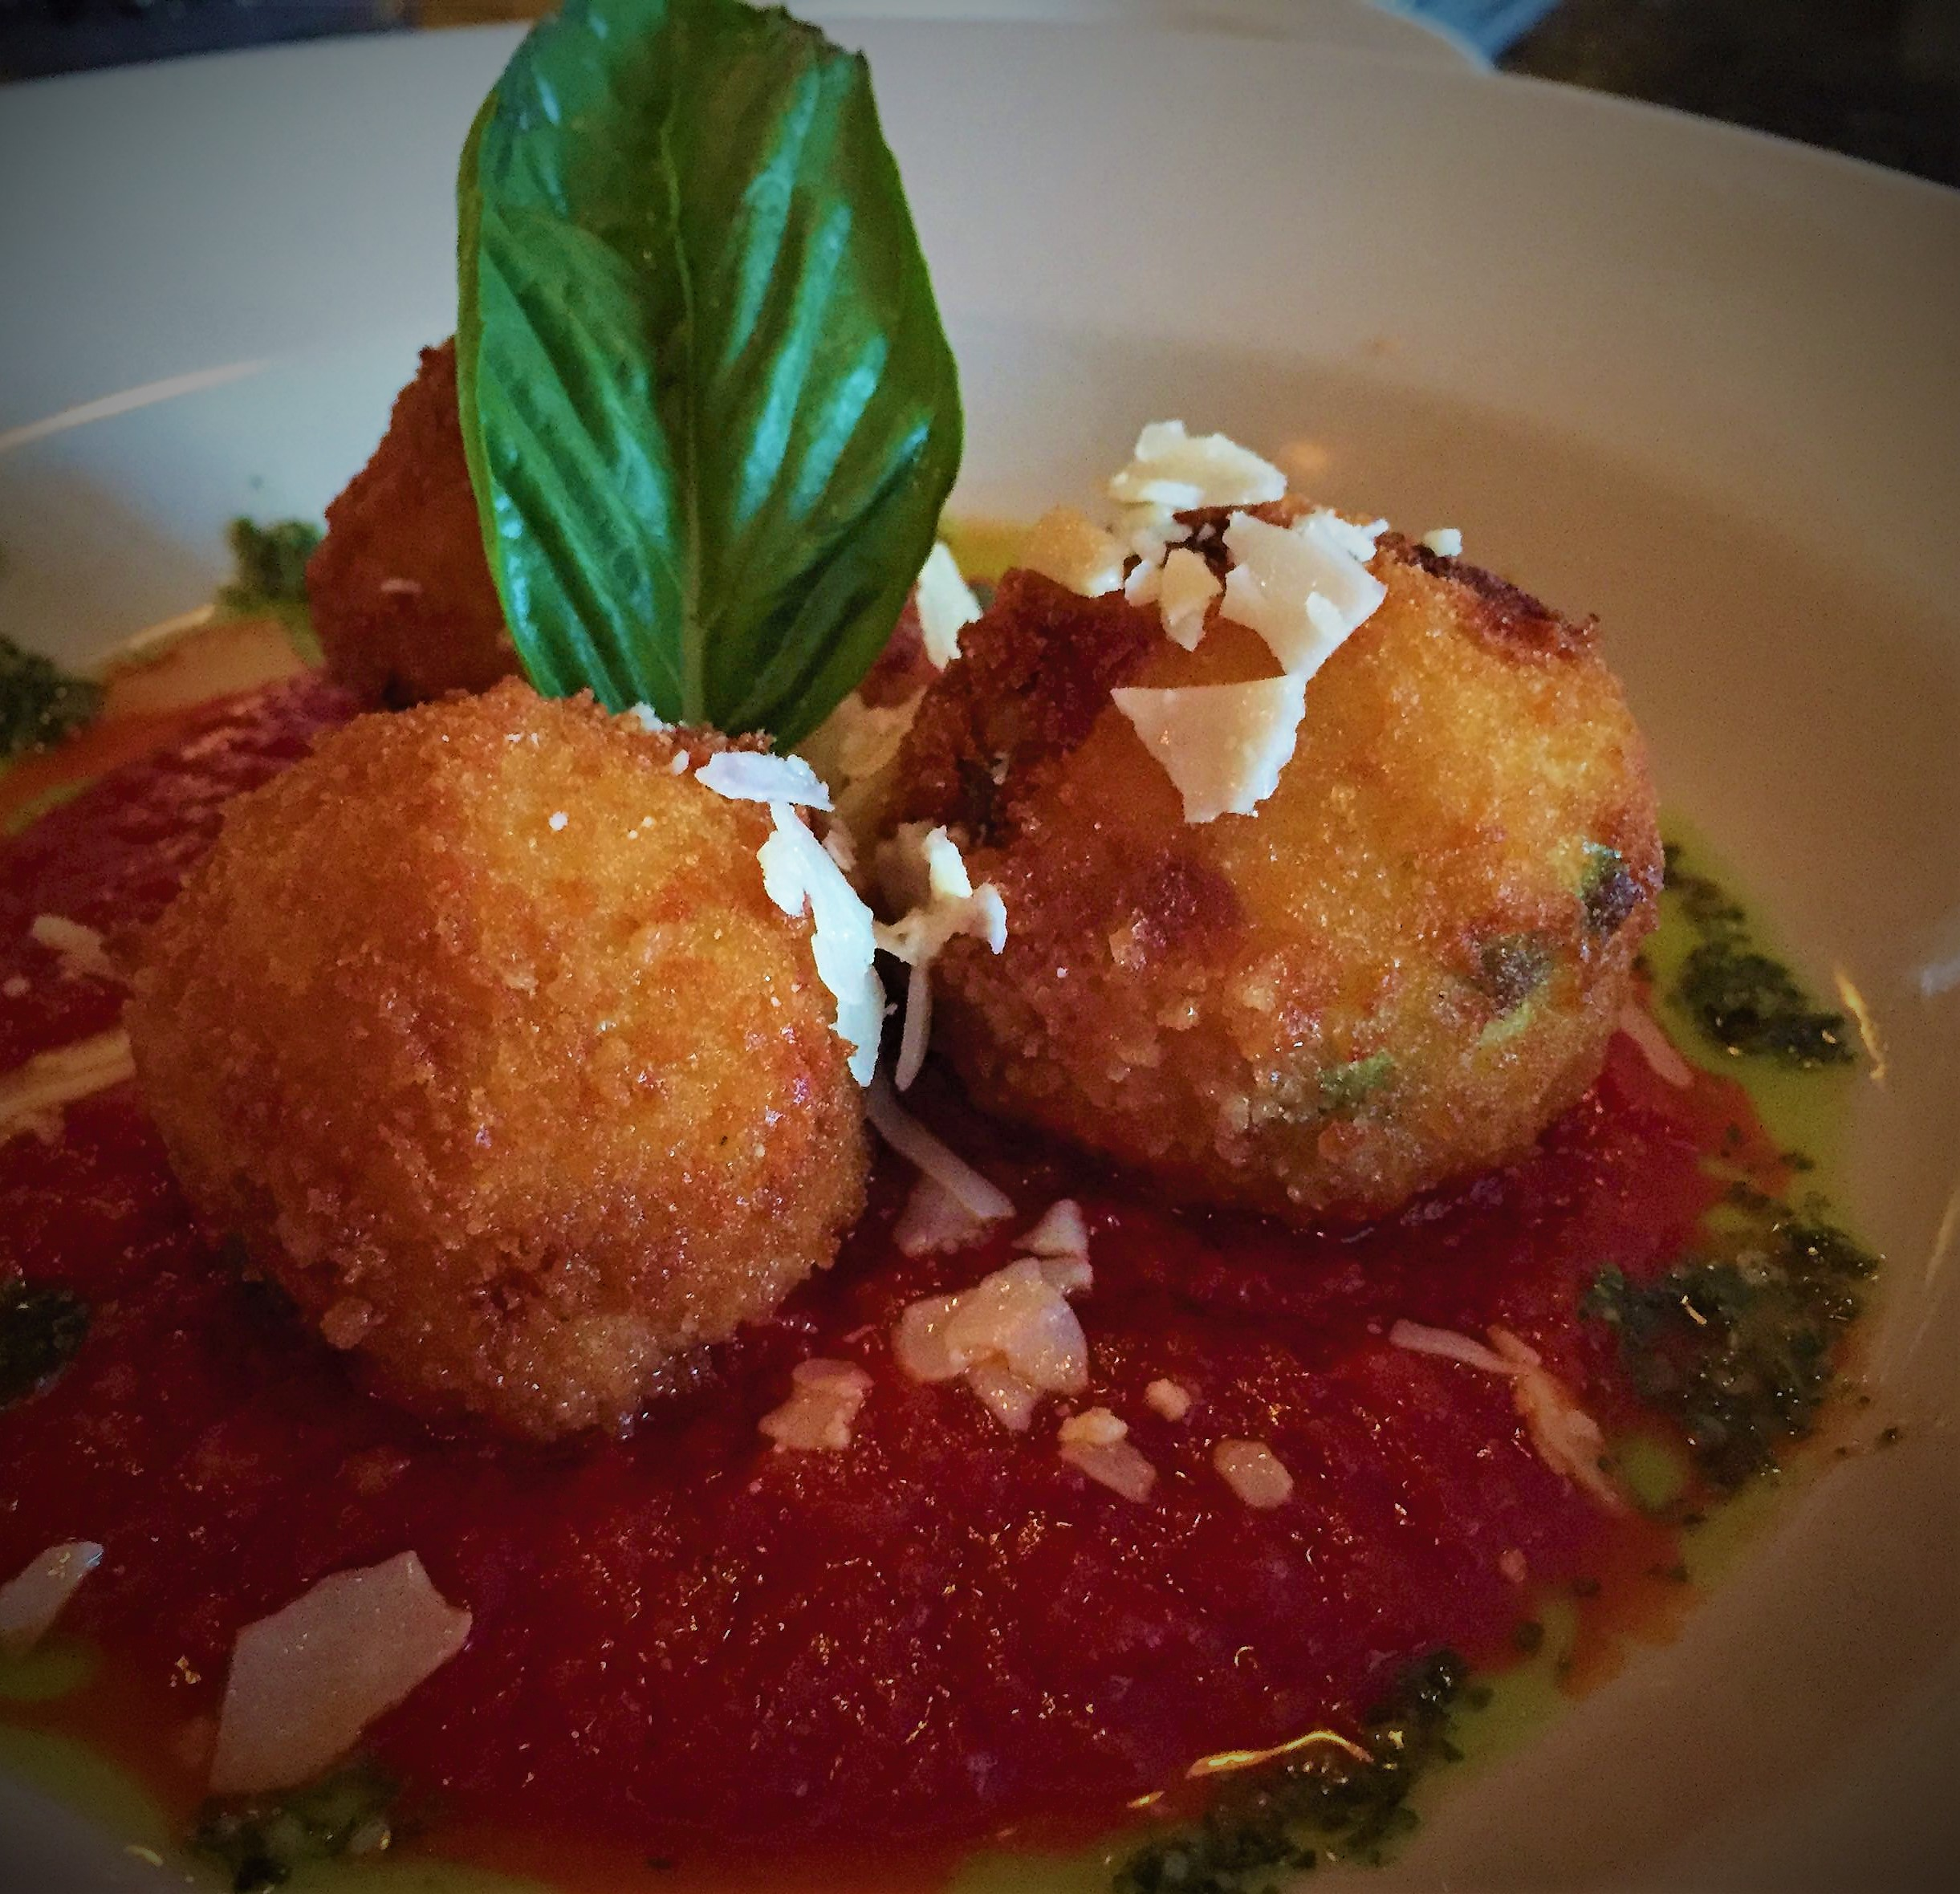 Golden Arancini from Gianni Fig's Ristorante in South Deerfield, MA